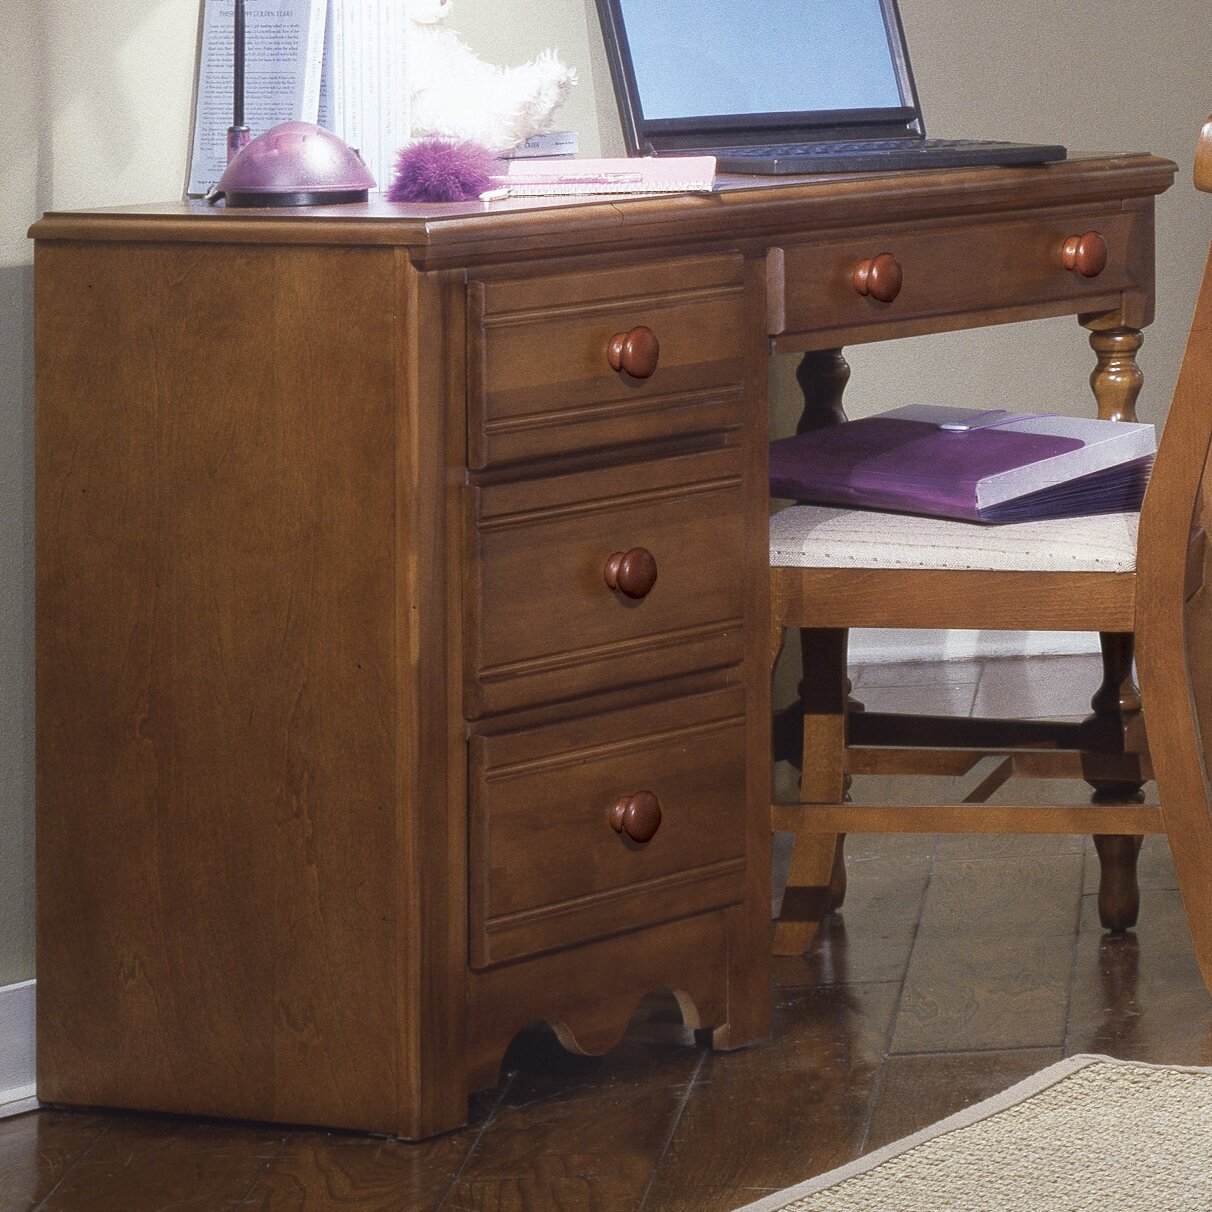 Carolina Furniture Works Inc Crossroads Computer Desk Reviews Wayfair